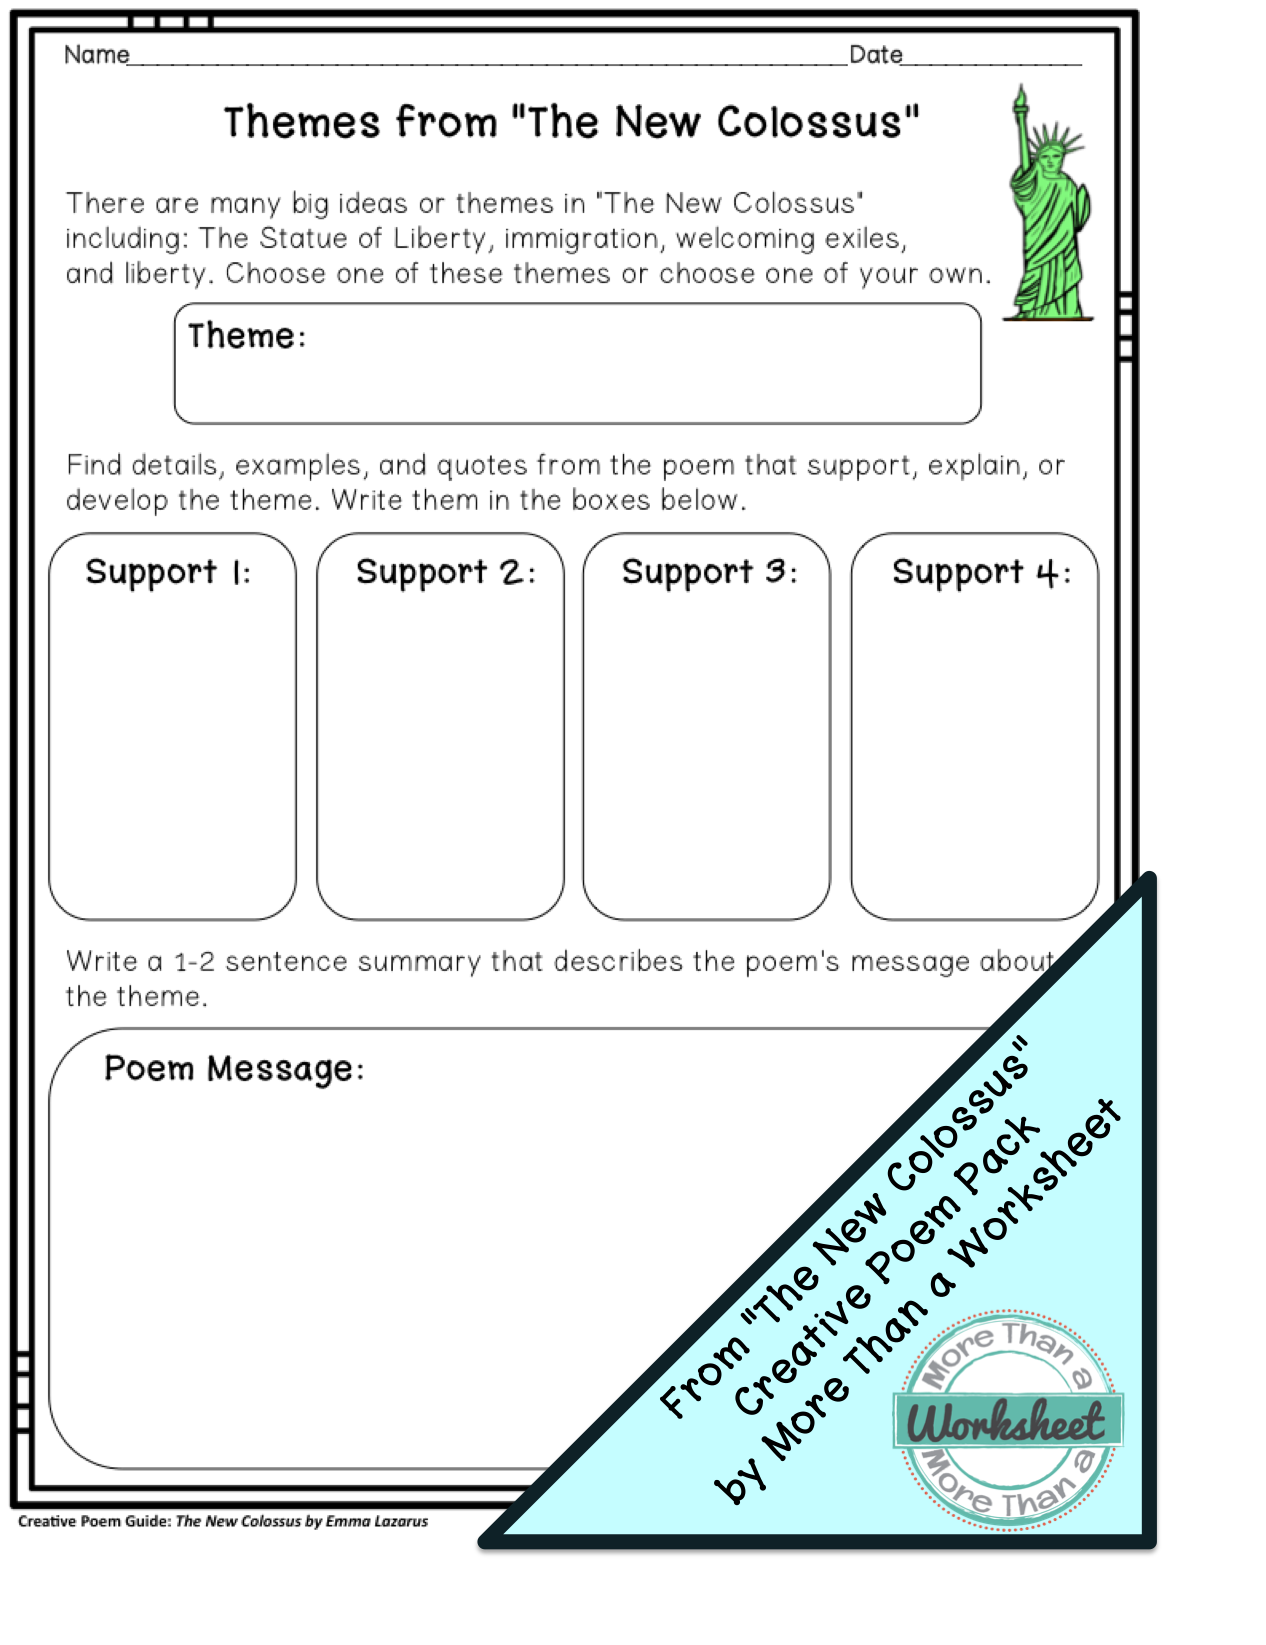 Poem Guide: The New Colossus by Emma Lazarus   Worksheets, Poem ...